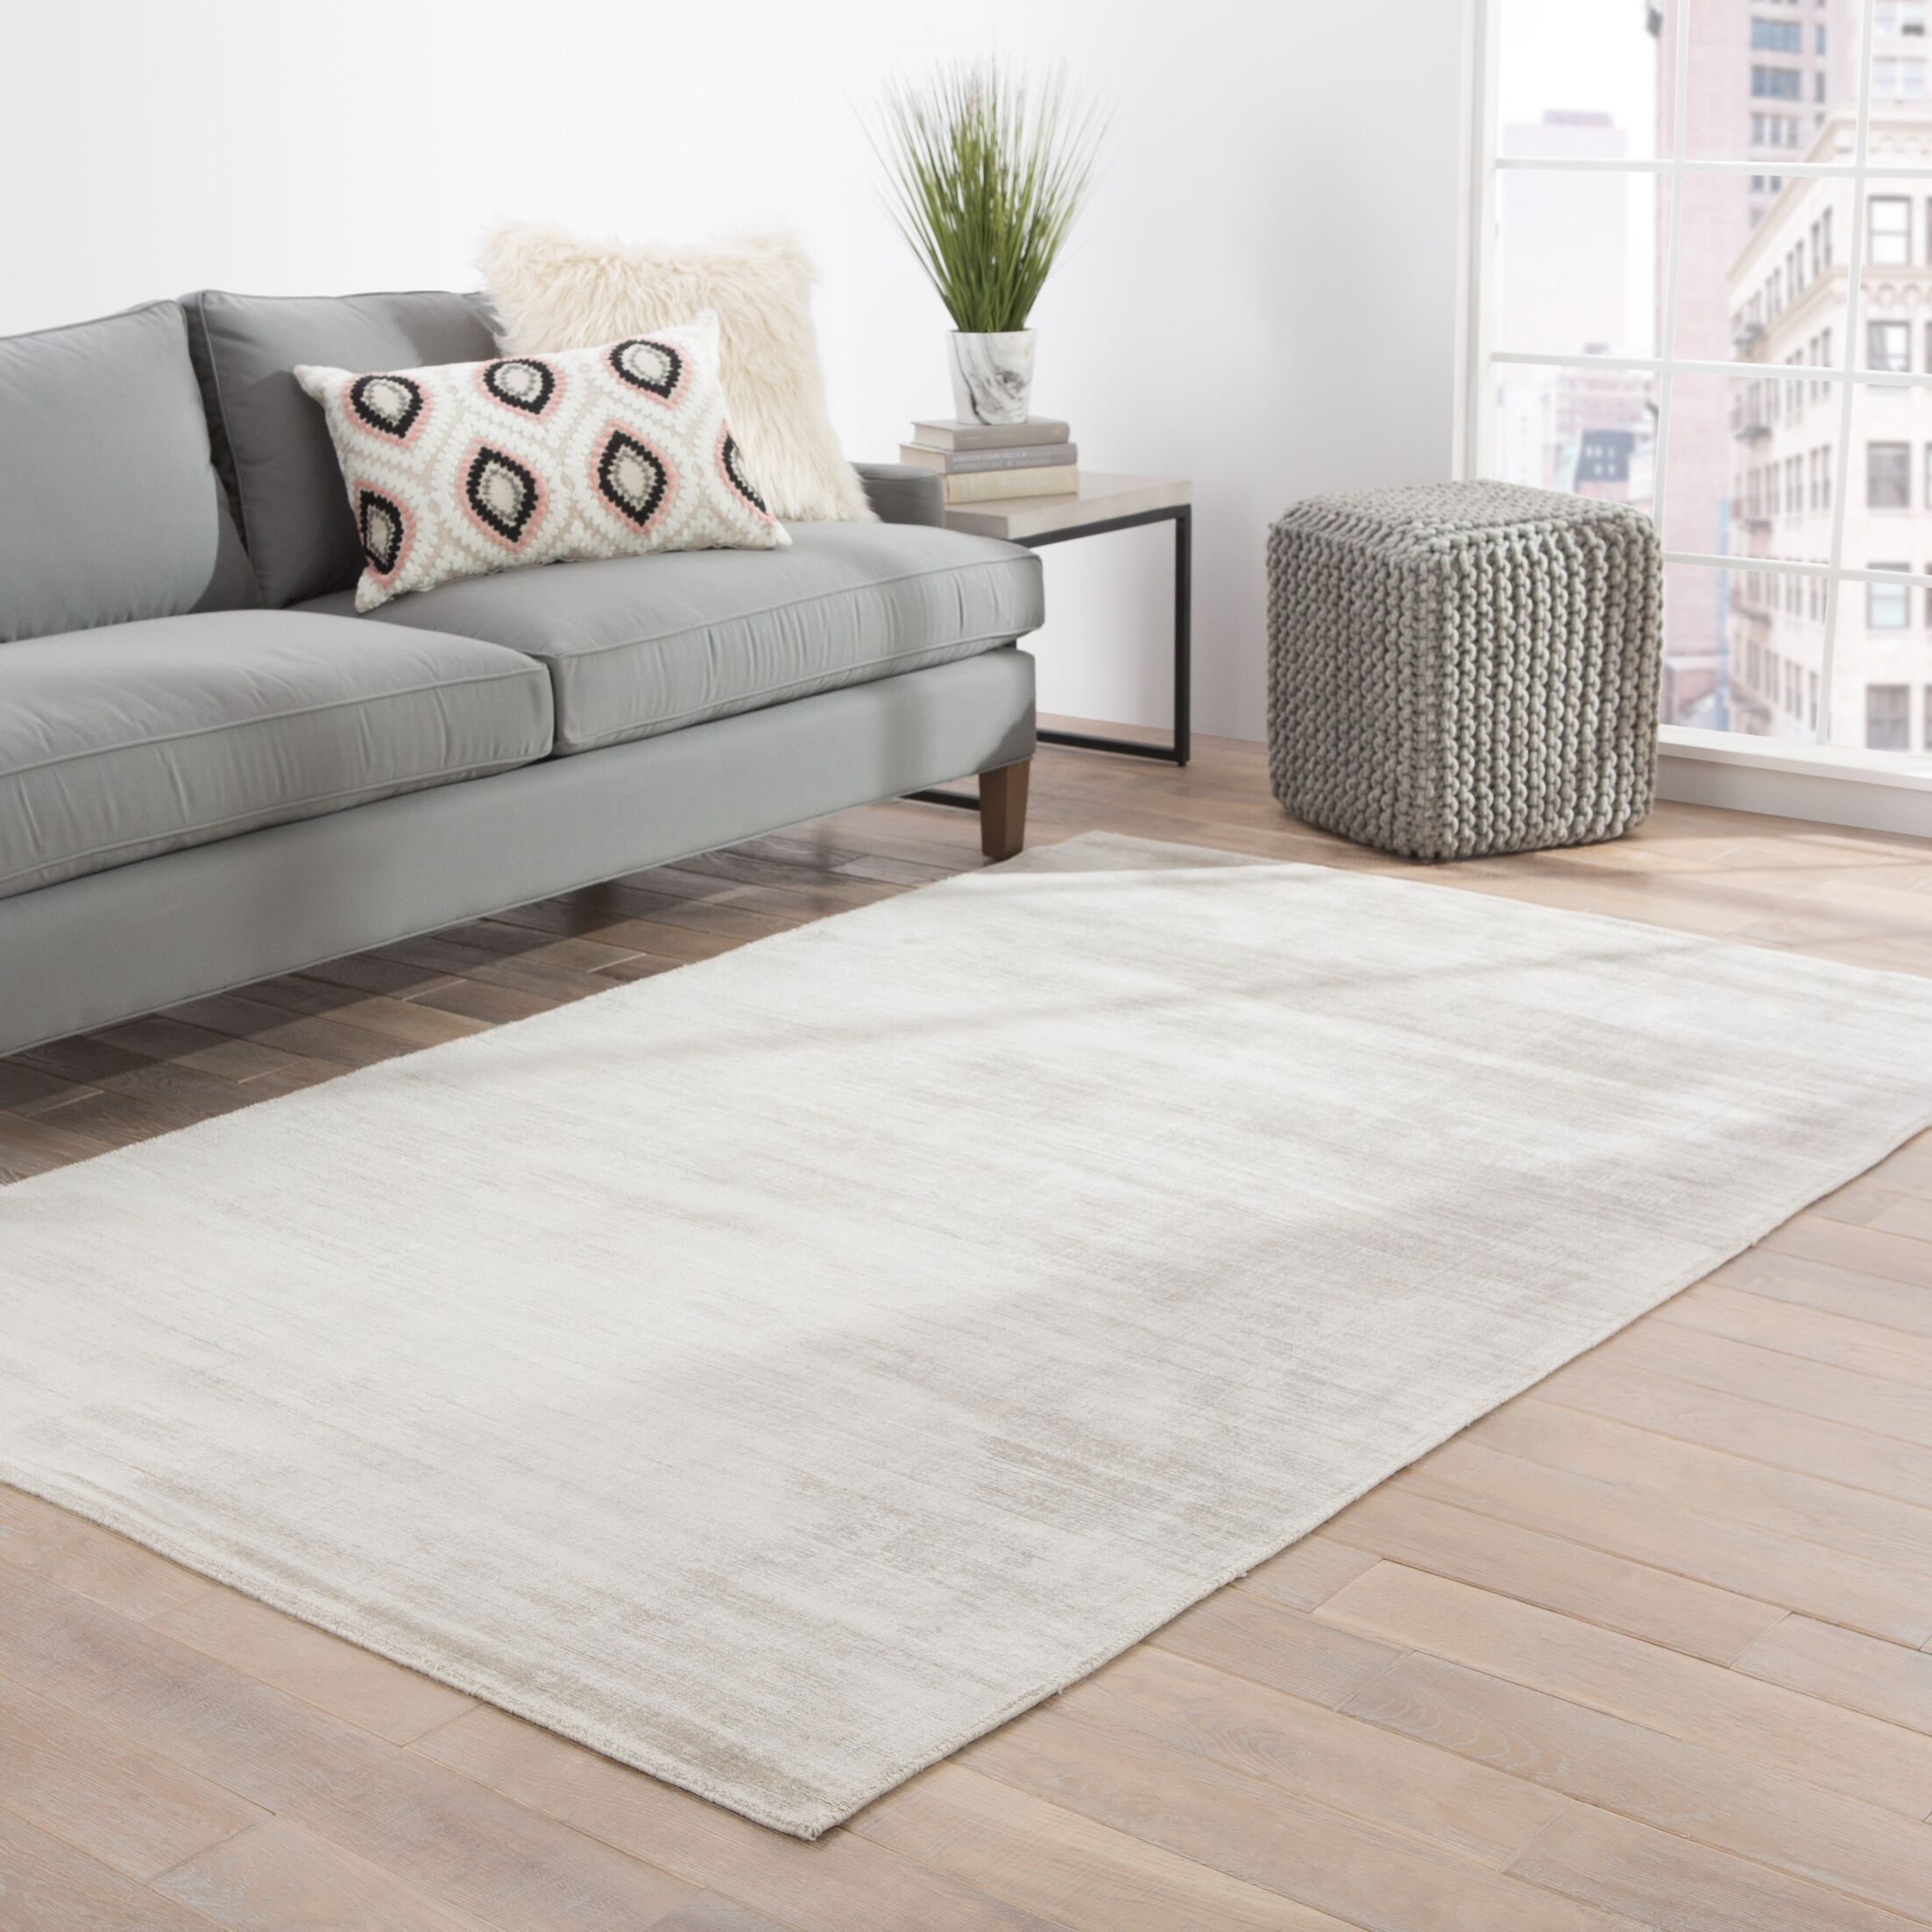 Canarsie Hand-Loomed Gray Area Rug Rug Size: Rectangle 8' x 10'